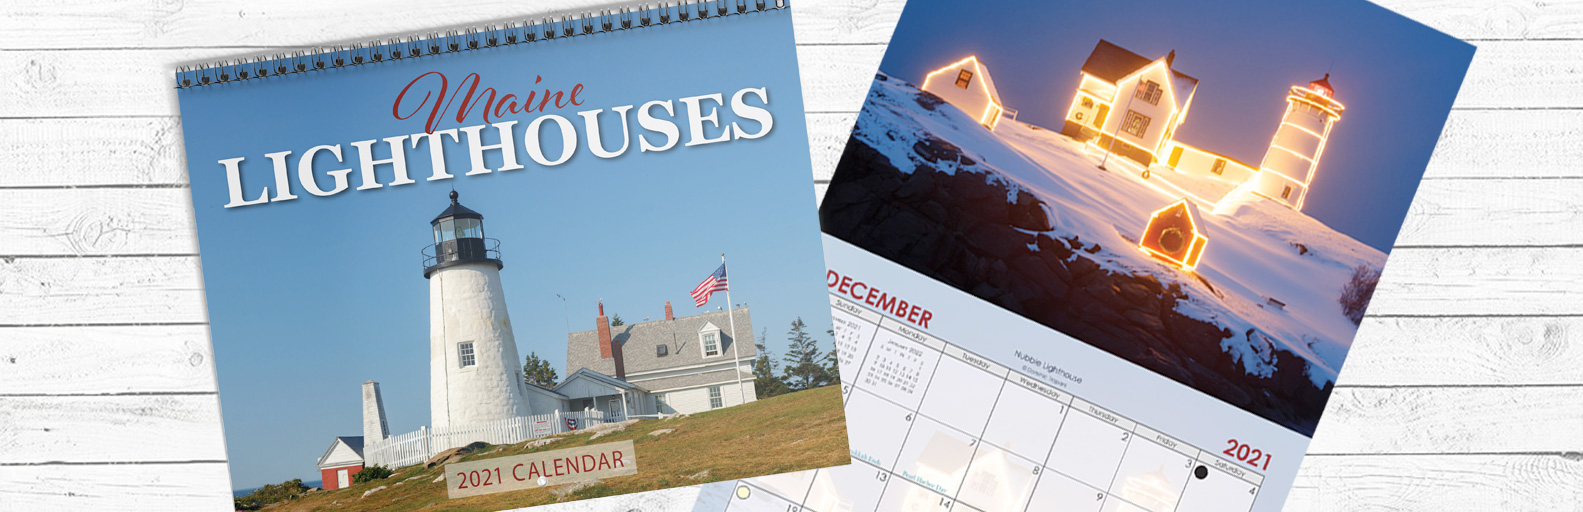 2021 Maine Lighthouse Calendar Released